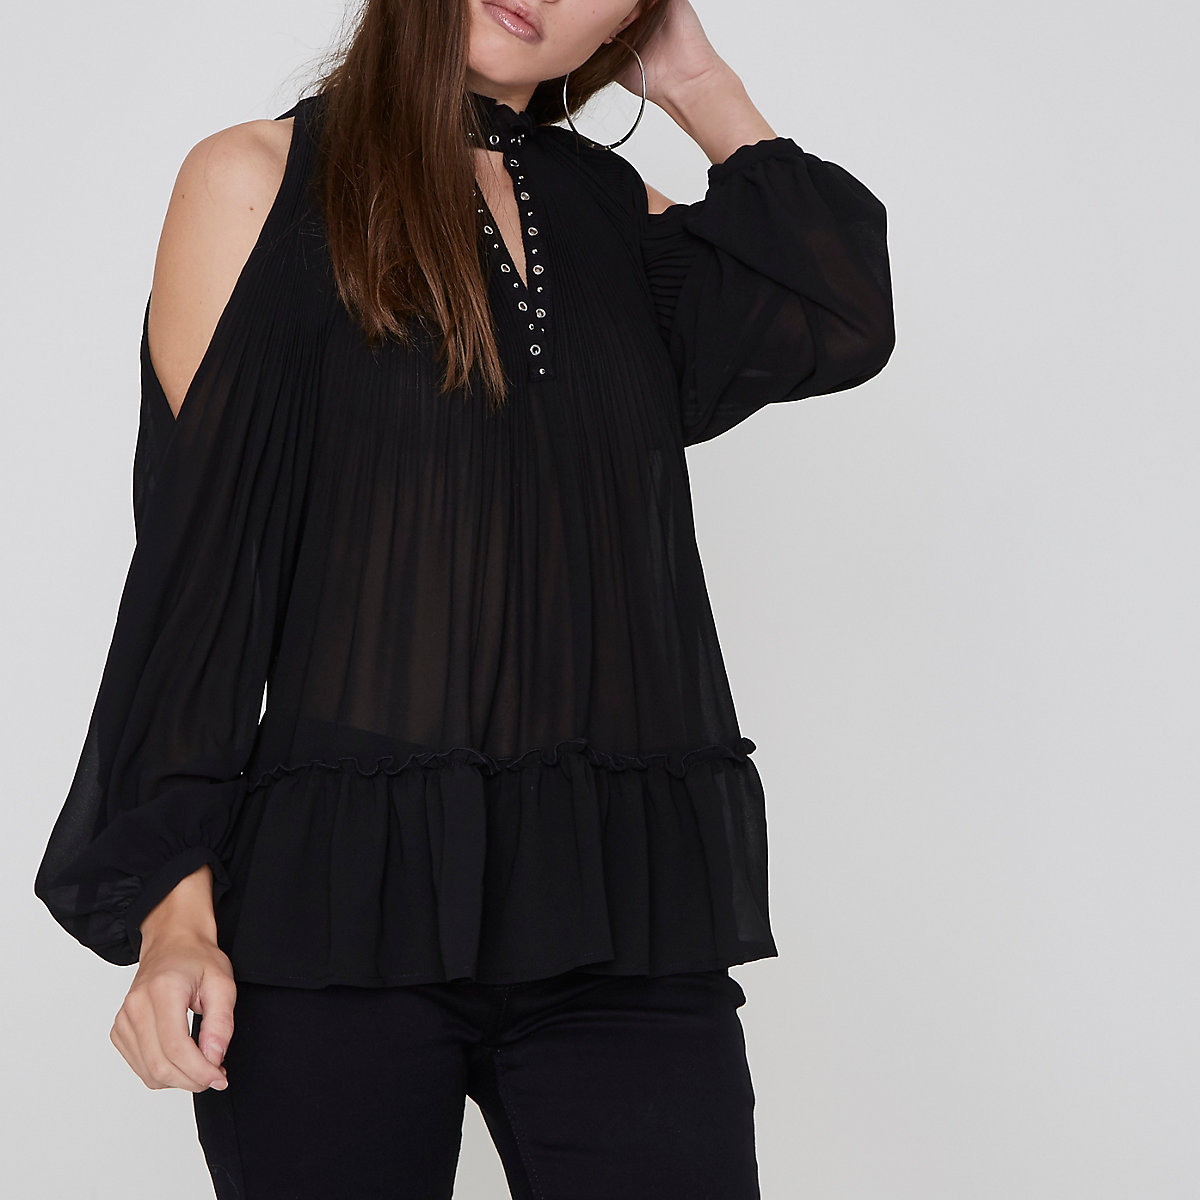 Petite black pleated eyelet high neck top